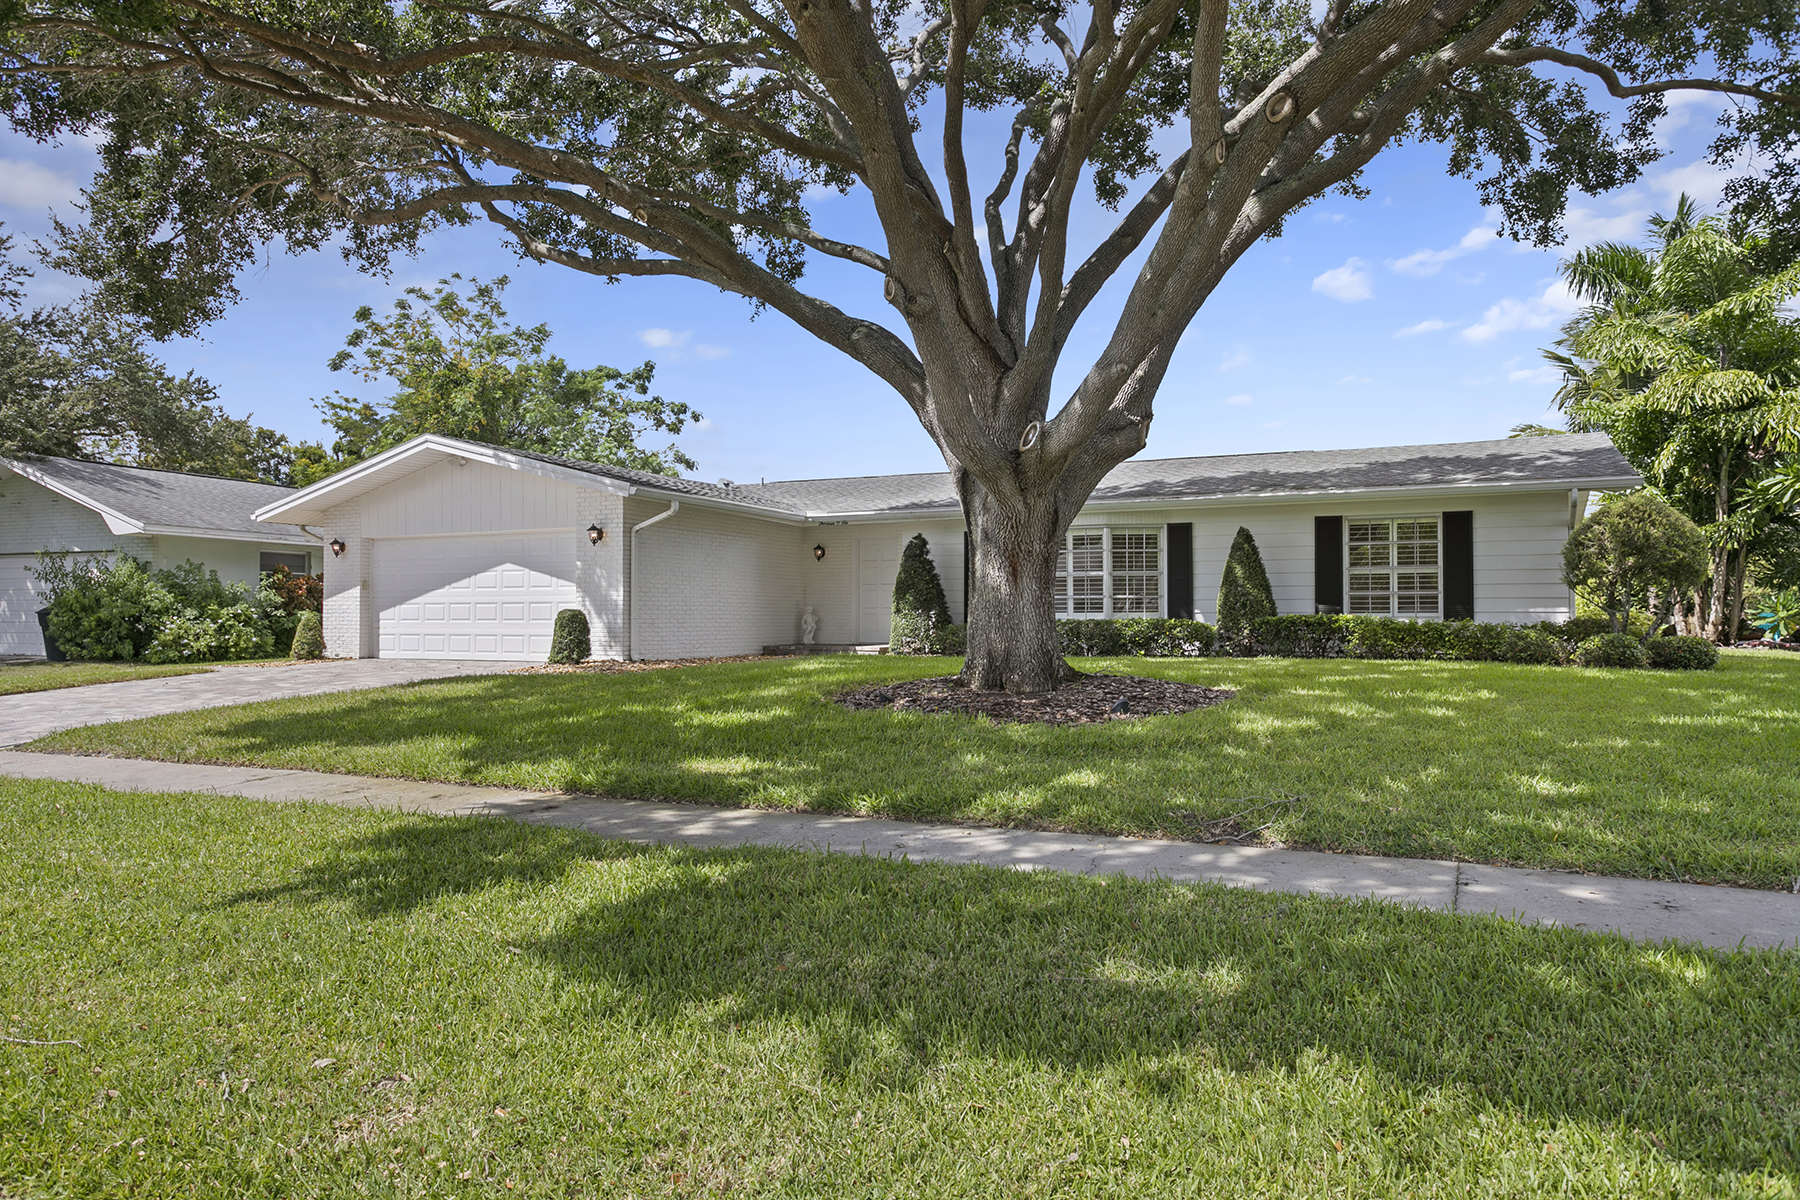 Single Family Homes for Sale at 1306 Alameda Ave Clearwater, Florida 33759 United States